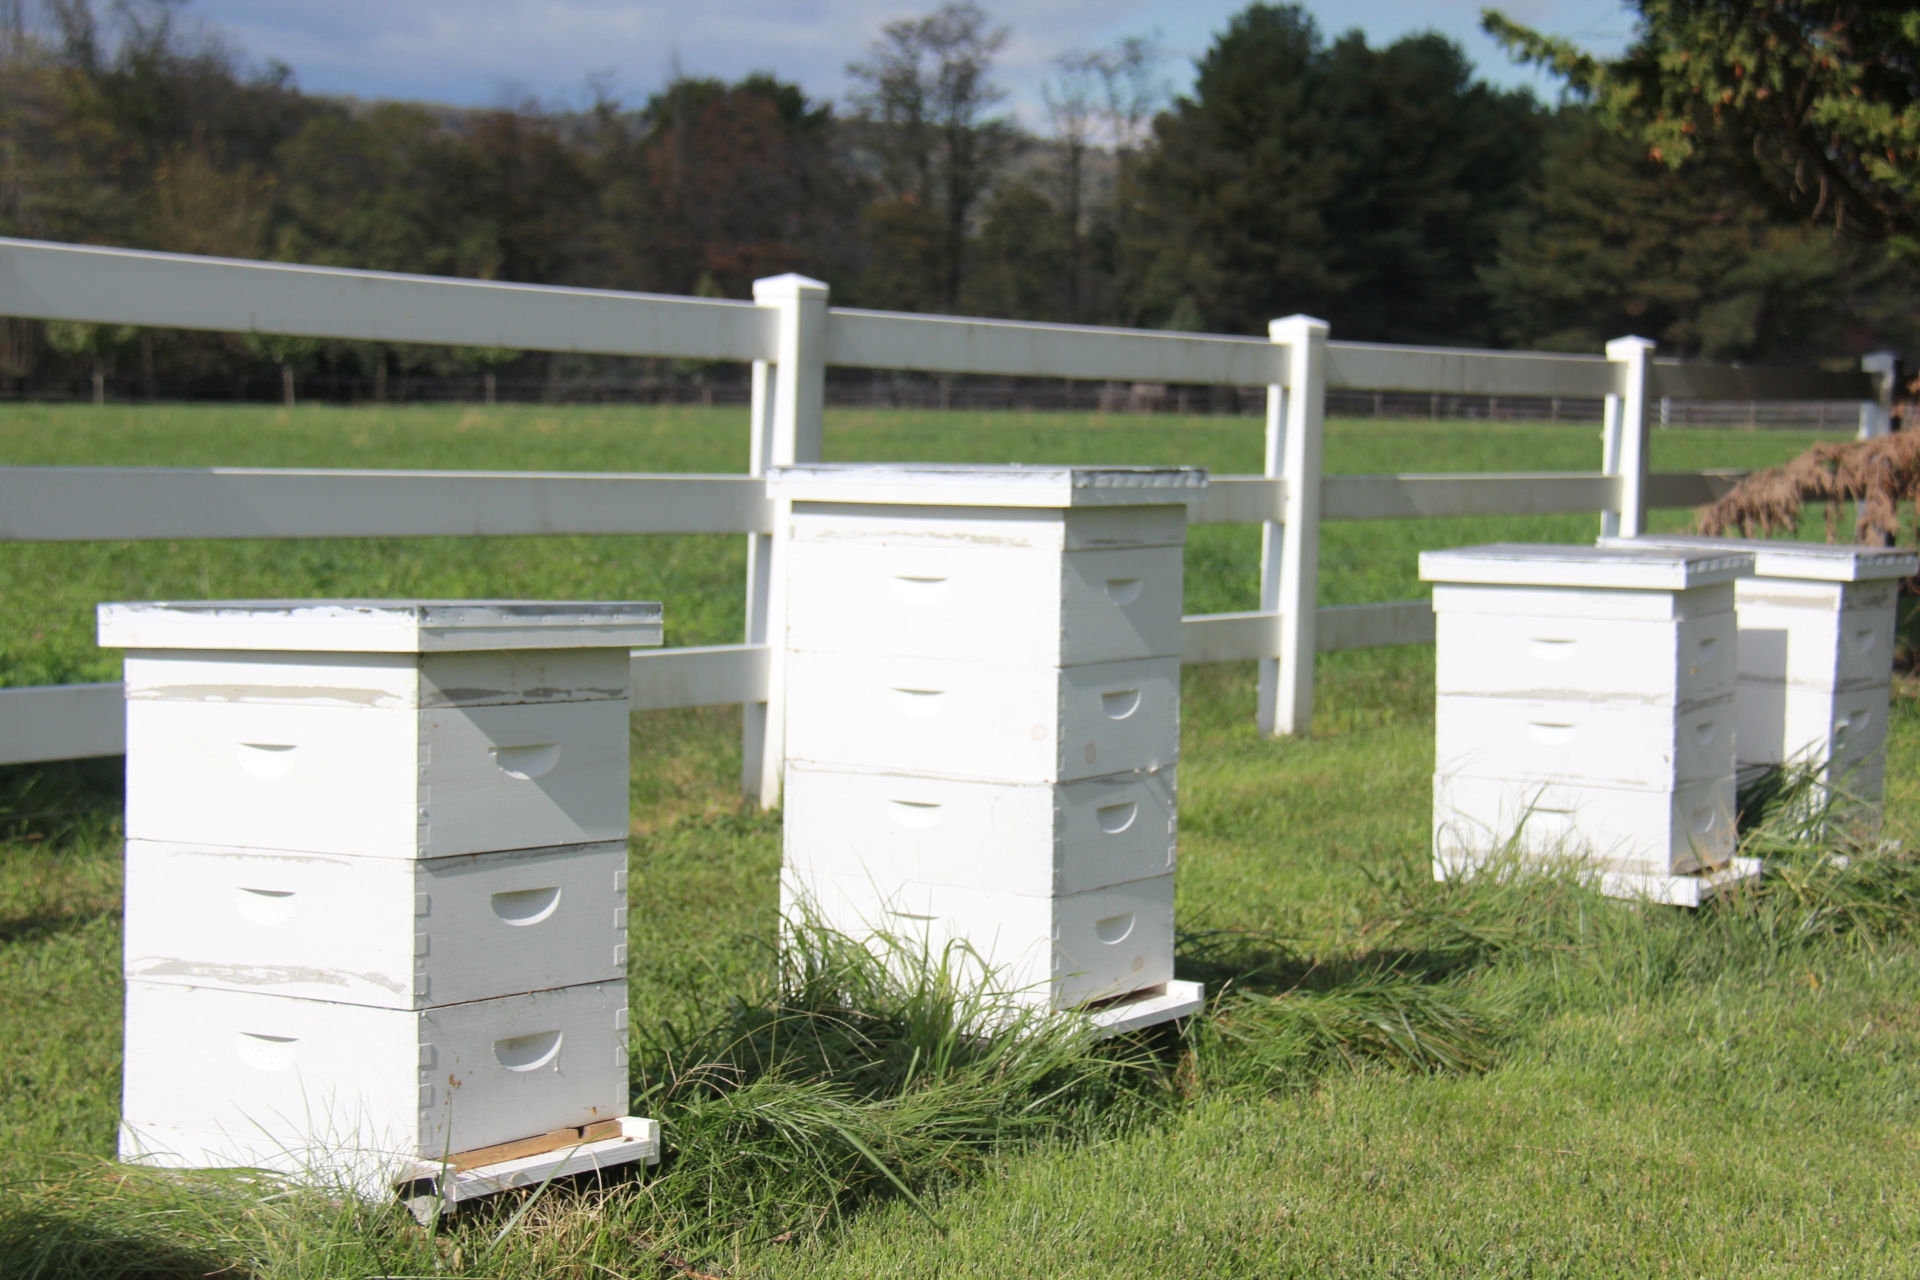 Soon to come: Farm Store and Beekeeping Supplies!